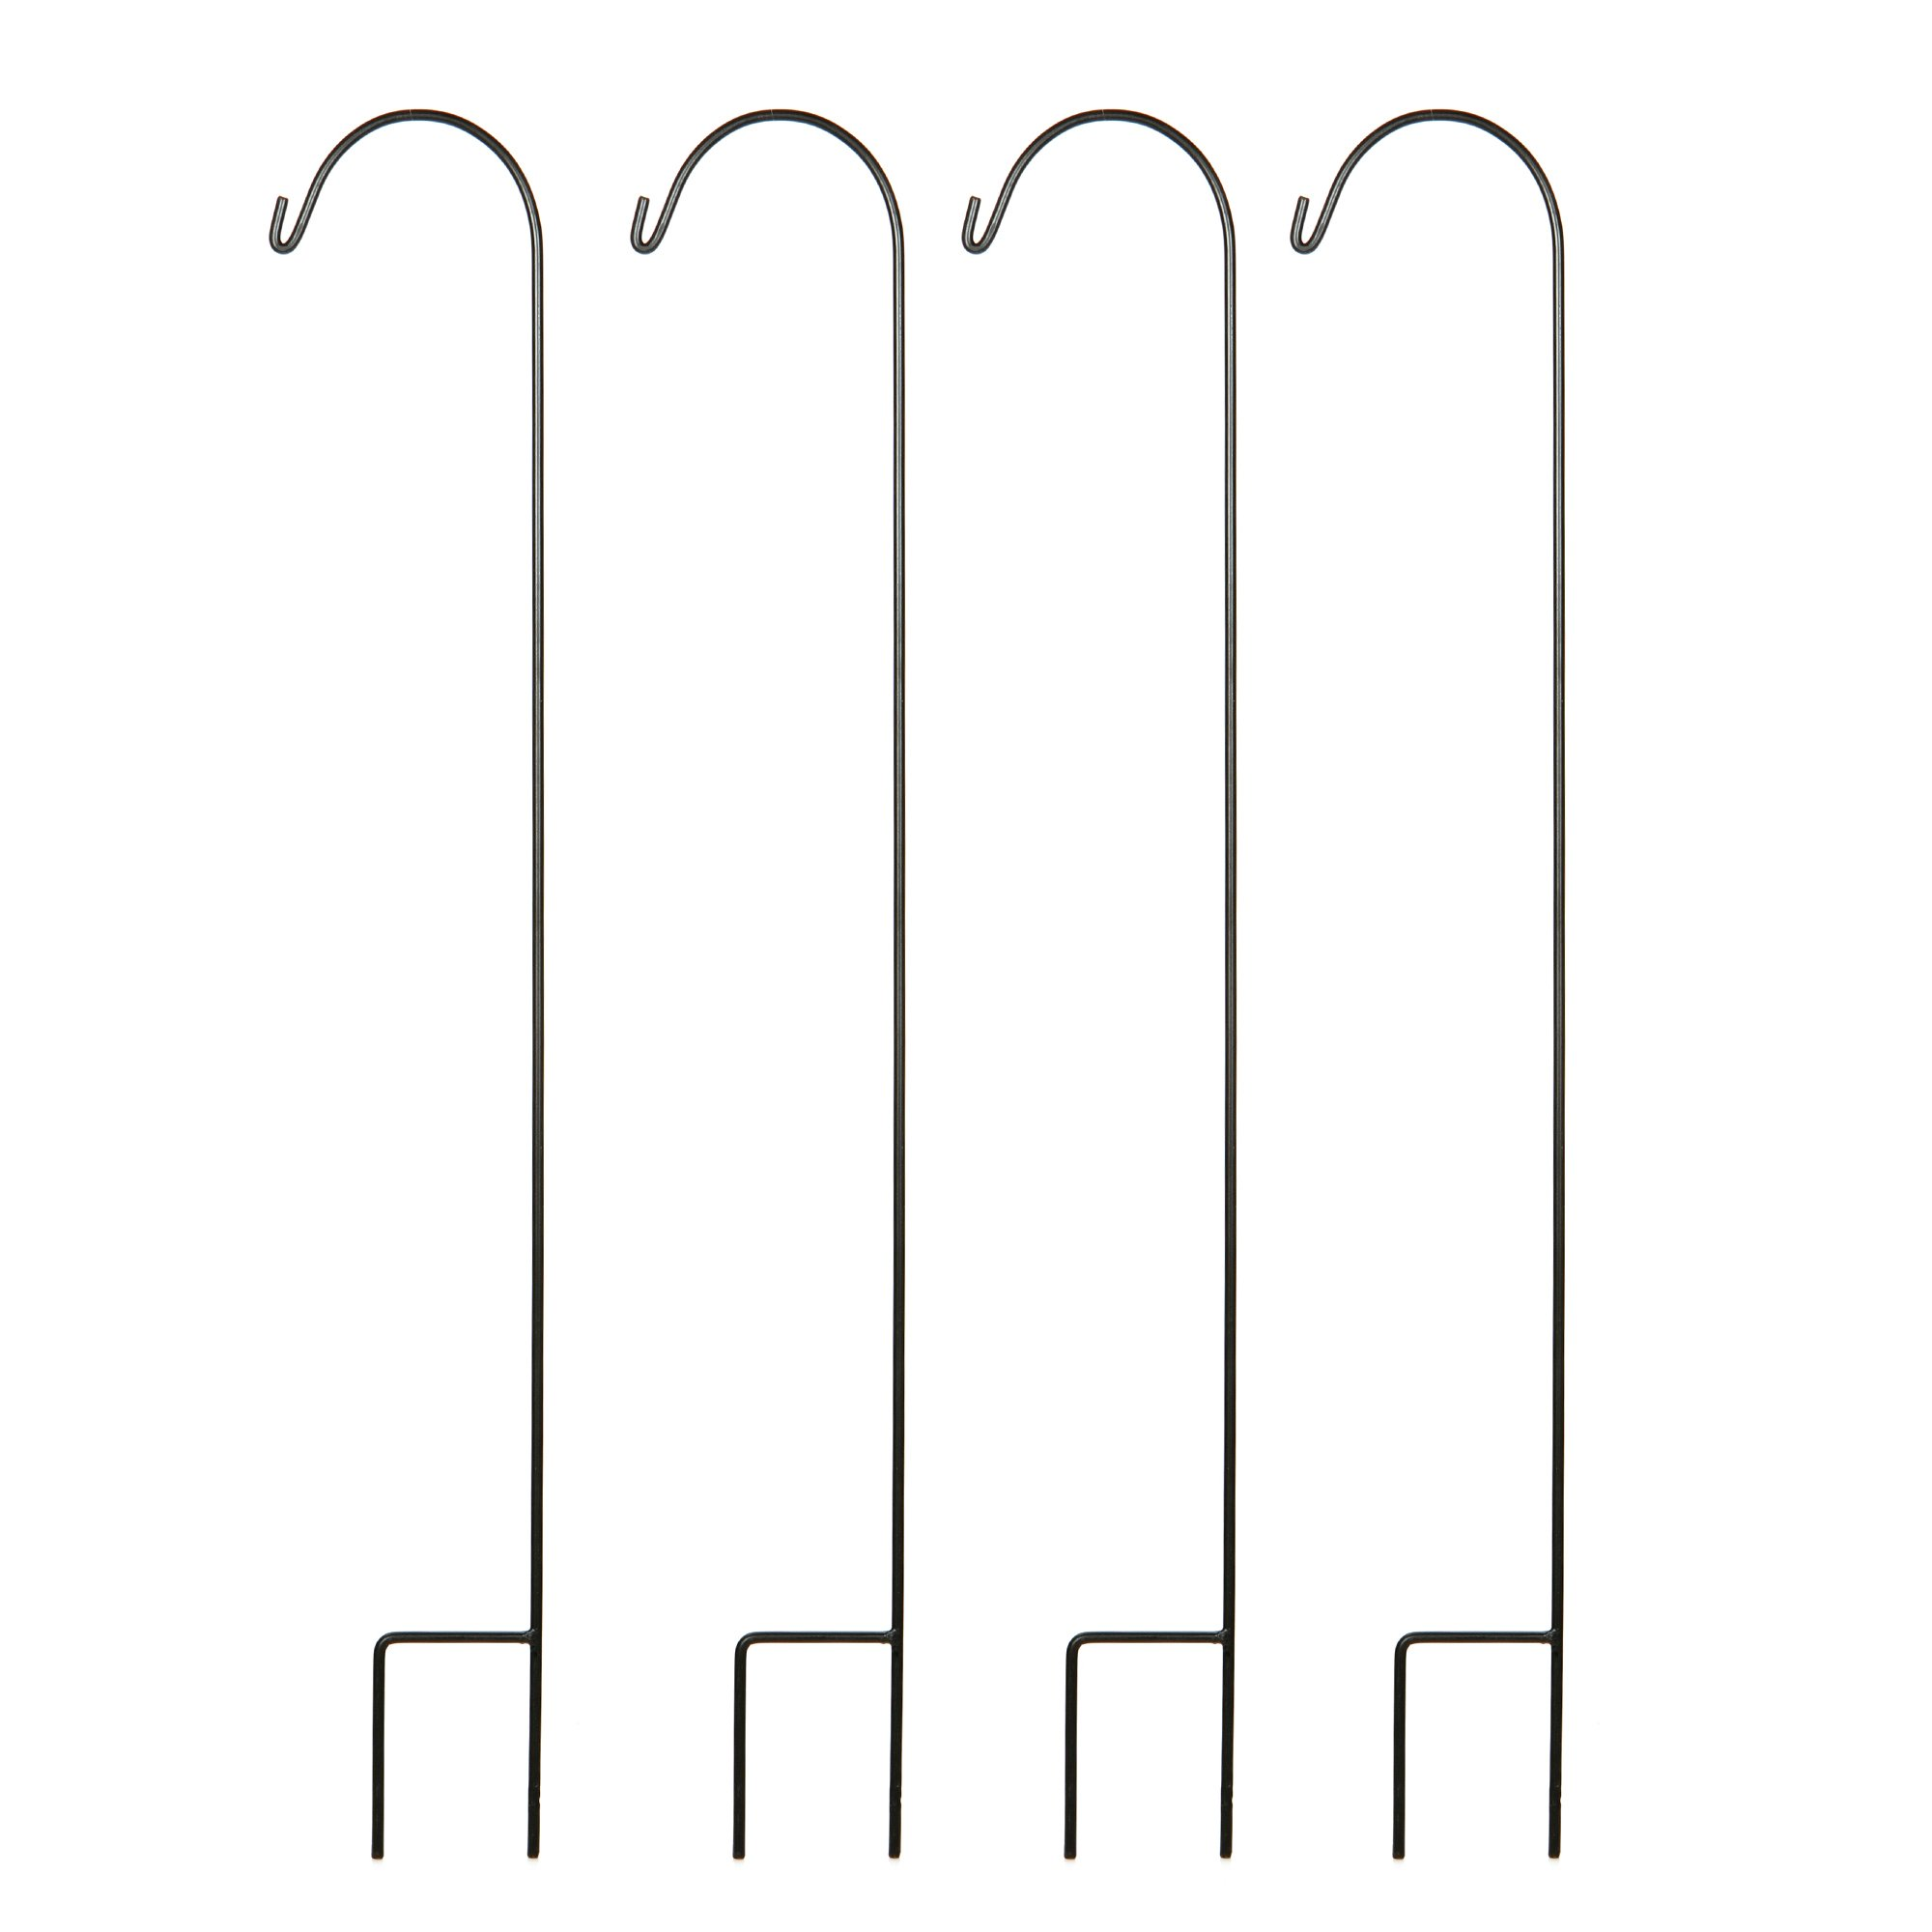 Hosley Set of 4 Shepherd Hooks- 33'' High. Ideal for Solar LED Lights, Bird Feeders, Mason Jars, Plant Hangers, Lanterns, Garden Stakes. Gift for Weddings, House Warming, Special Events O3